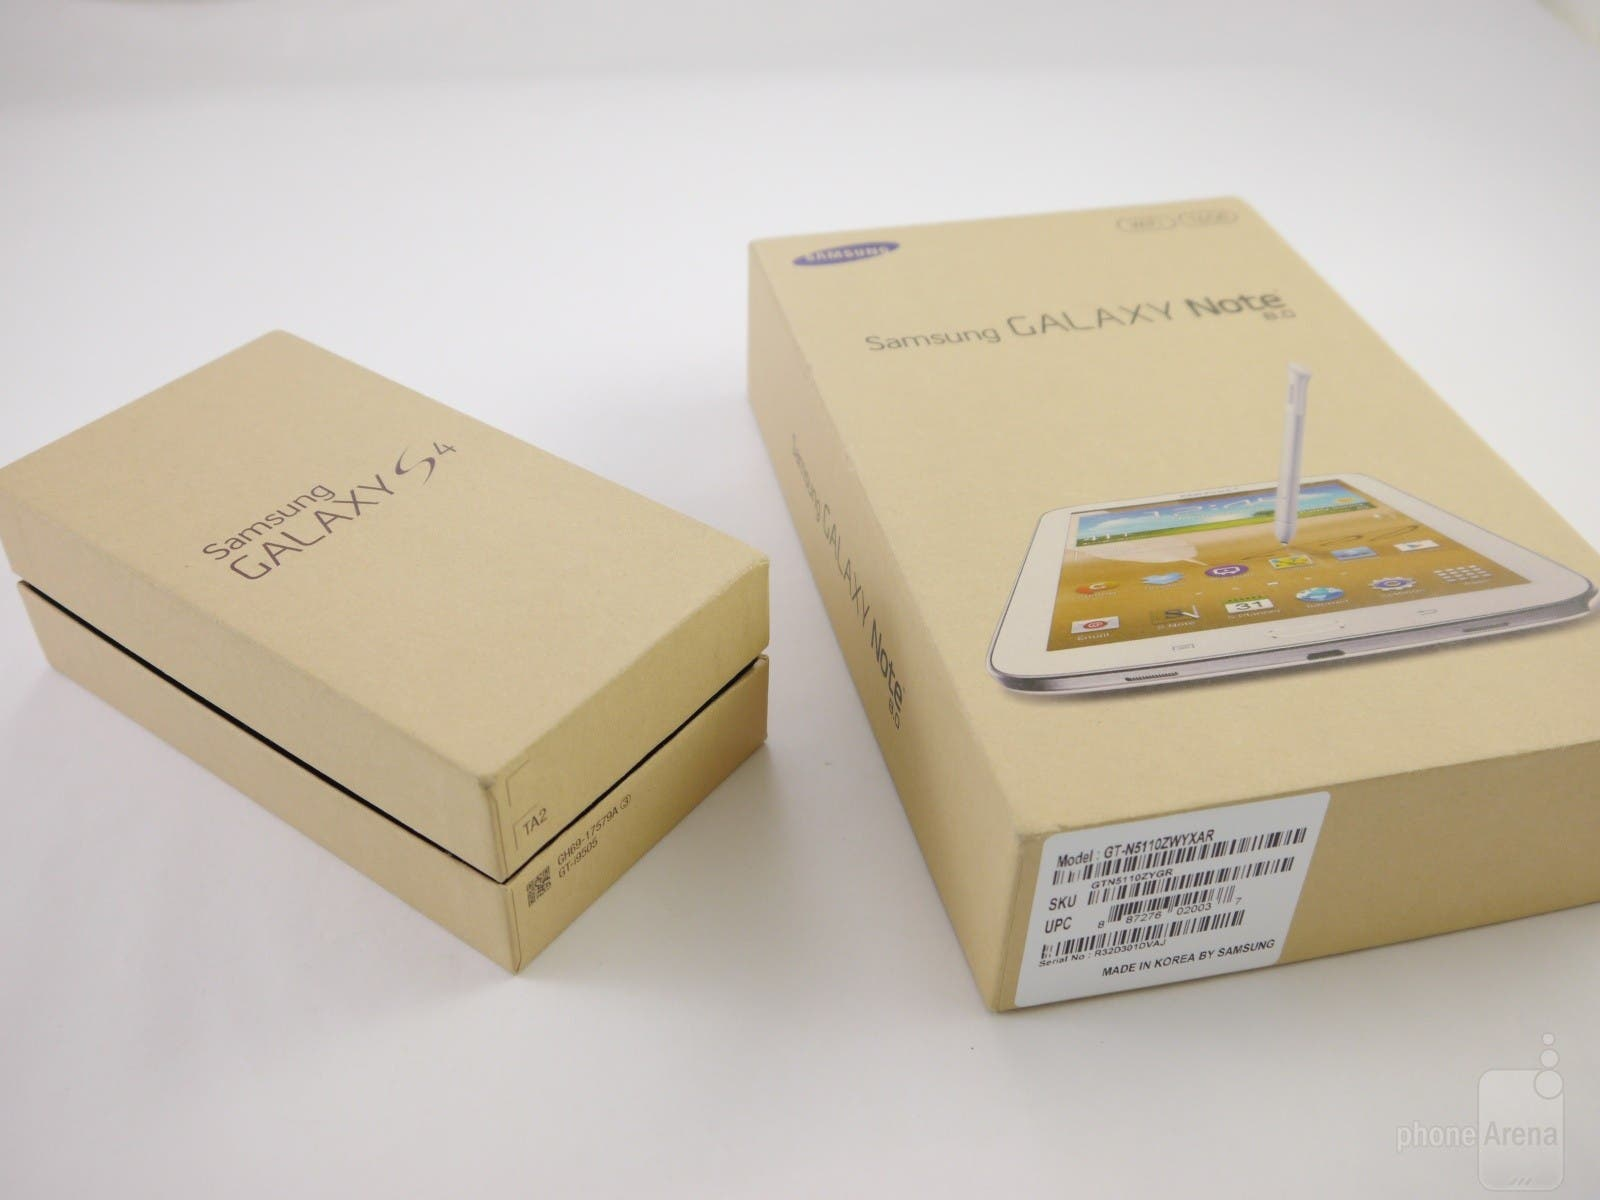 The-retail-boxes-of-the-Galaxy-S4-and-Galaxy-Note-8.0